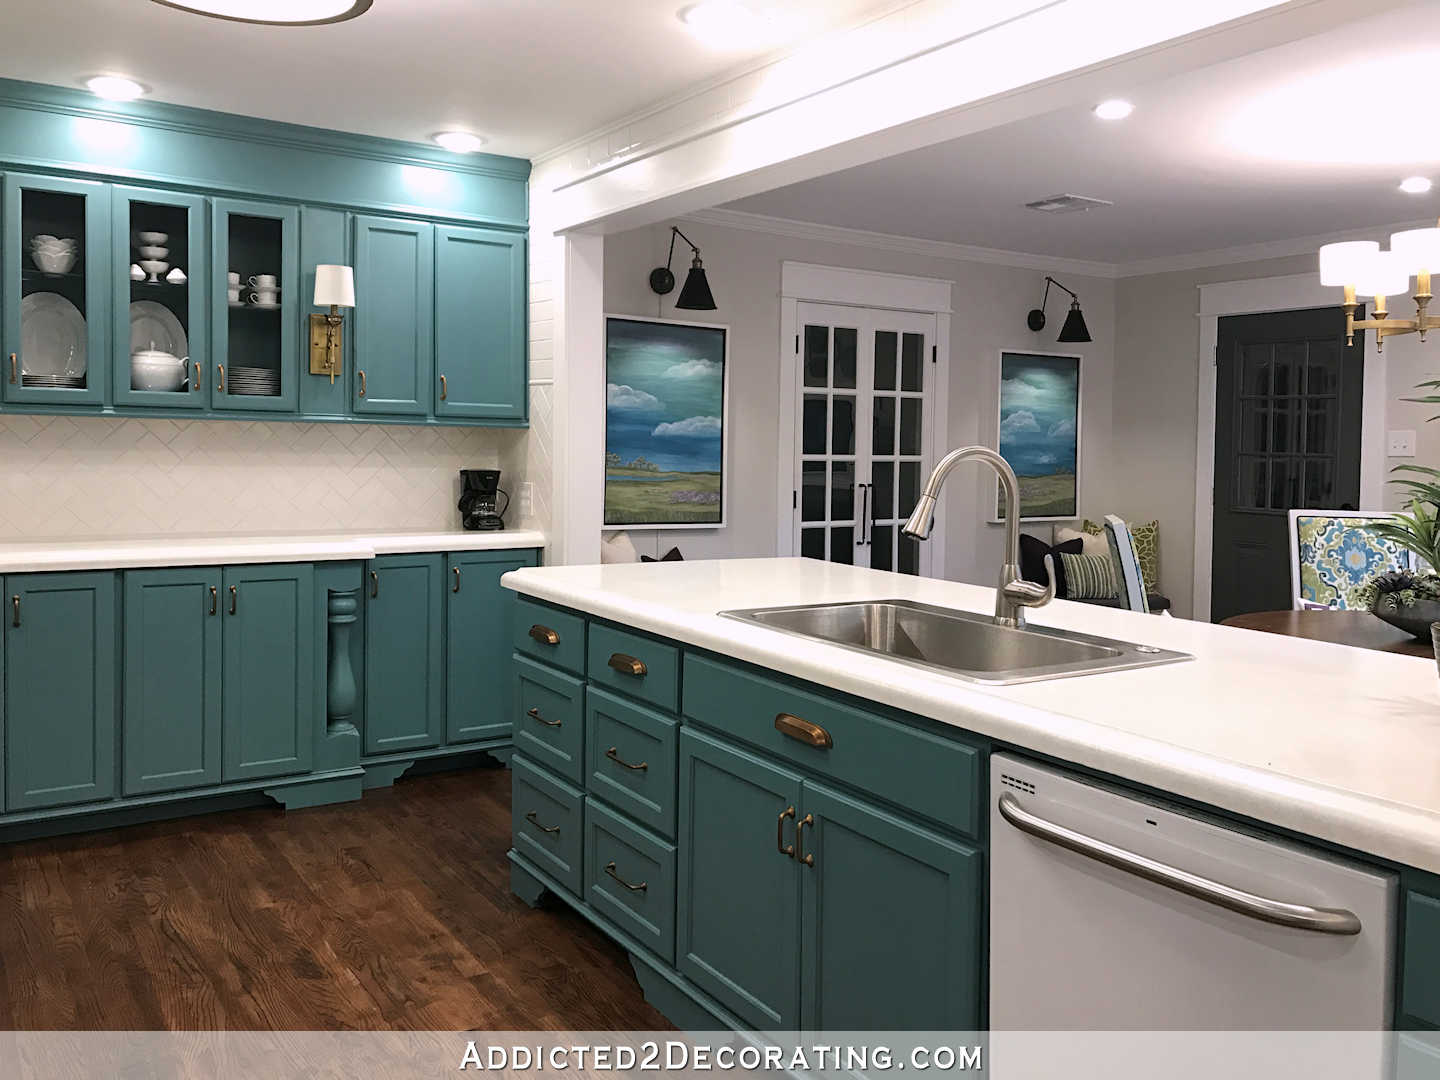 My Finishedfornow Kitchen From Kelly Green To Teal